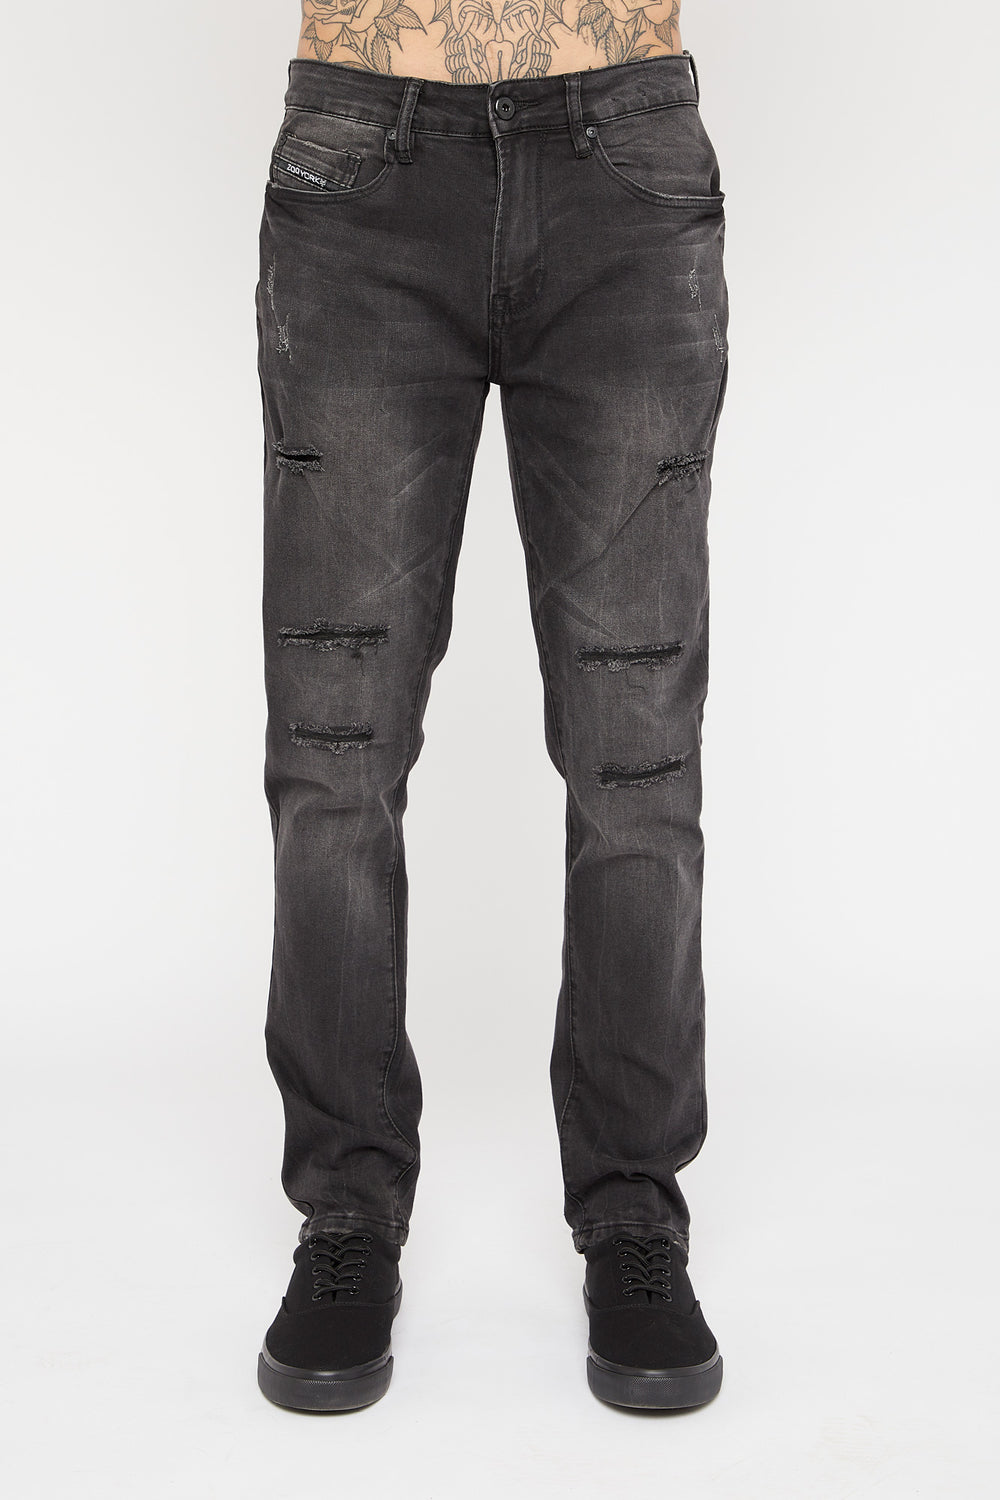 Jeans Filiforme d'Aspect Usé Zoo York Homme Noir Total